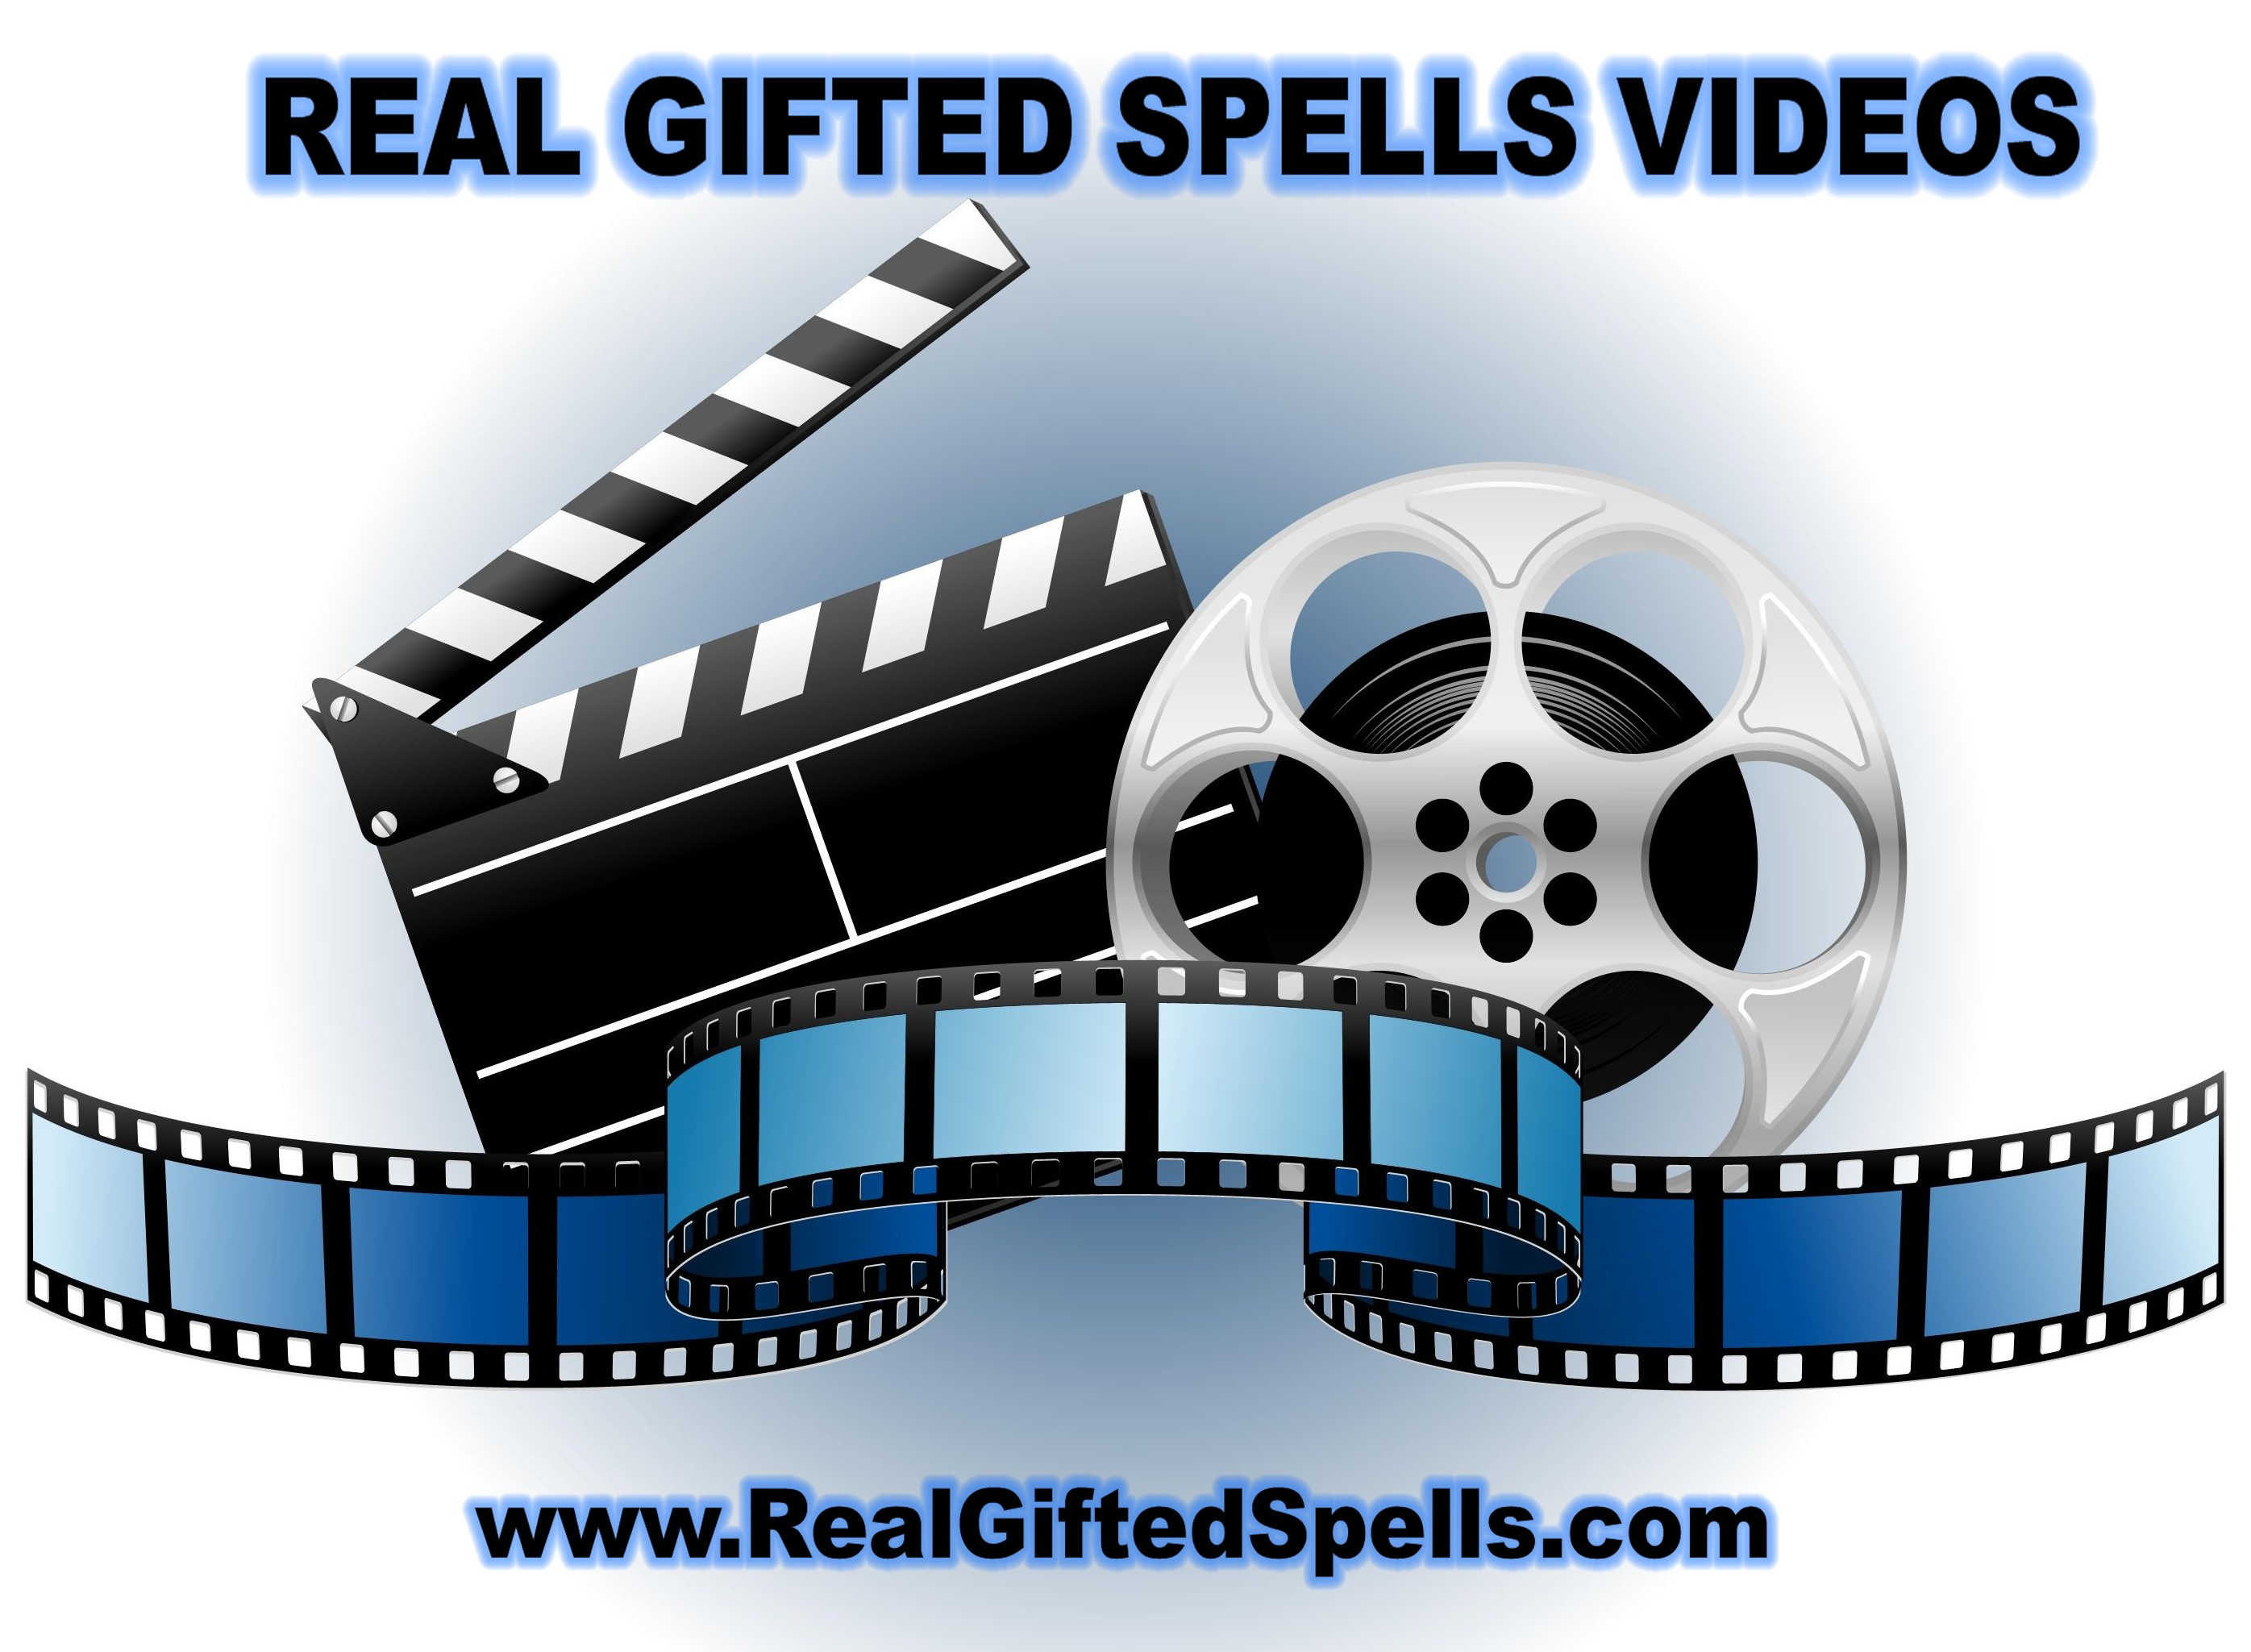 Real Gifted Spells videos magic spells psychic spell casters videos